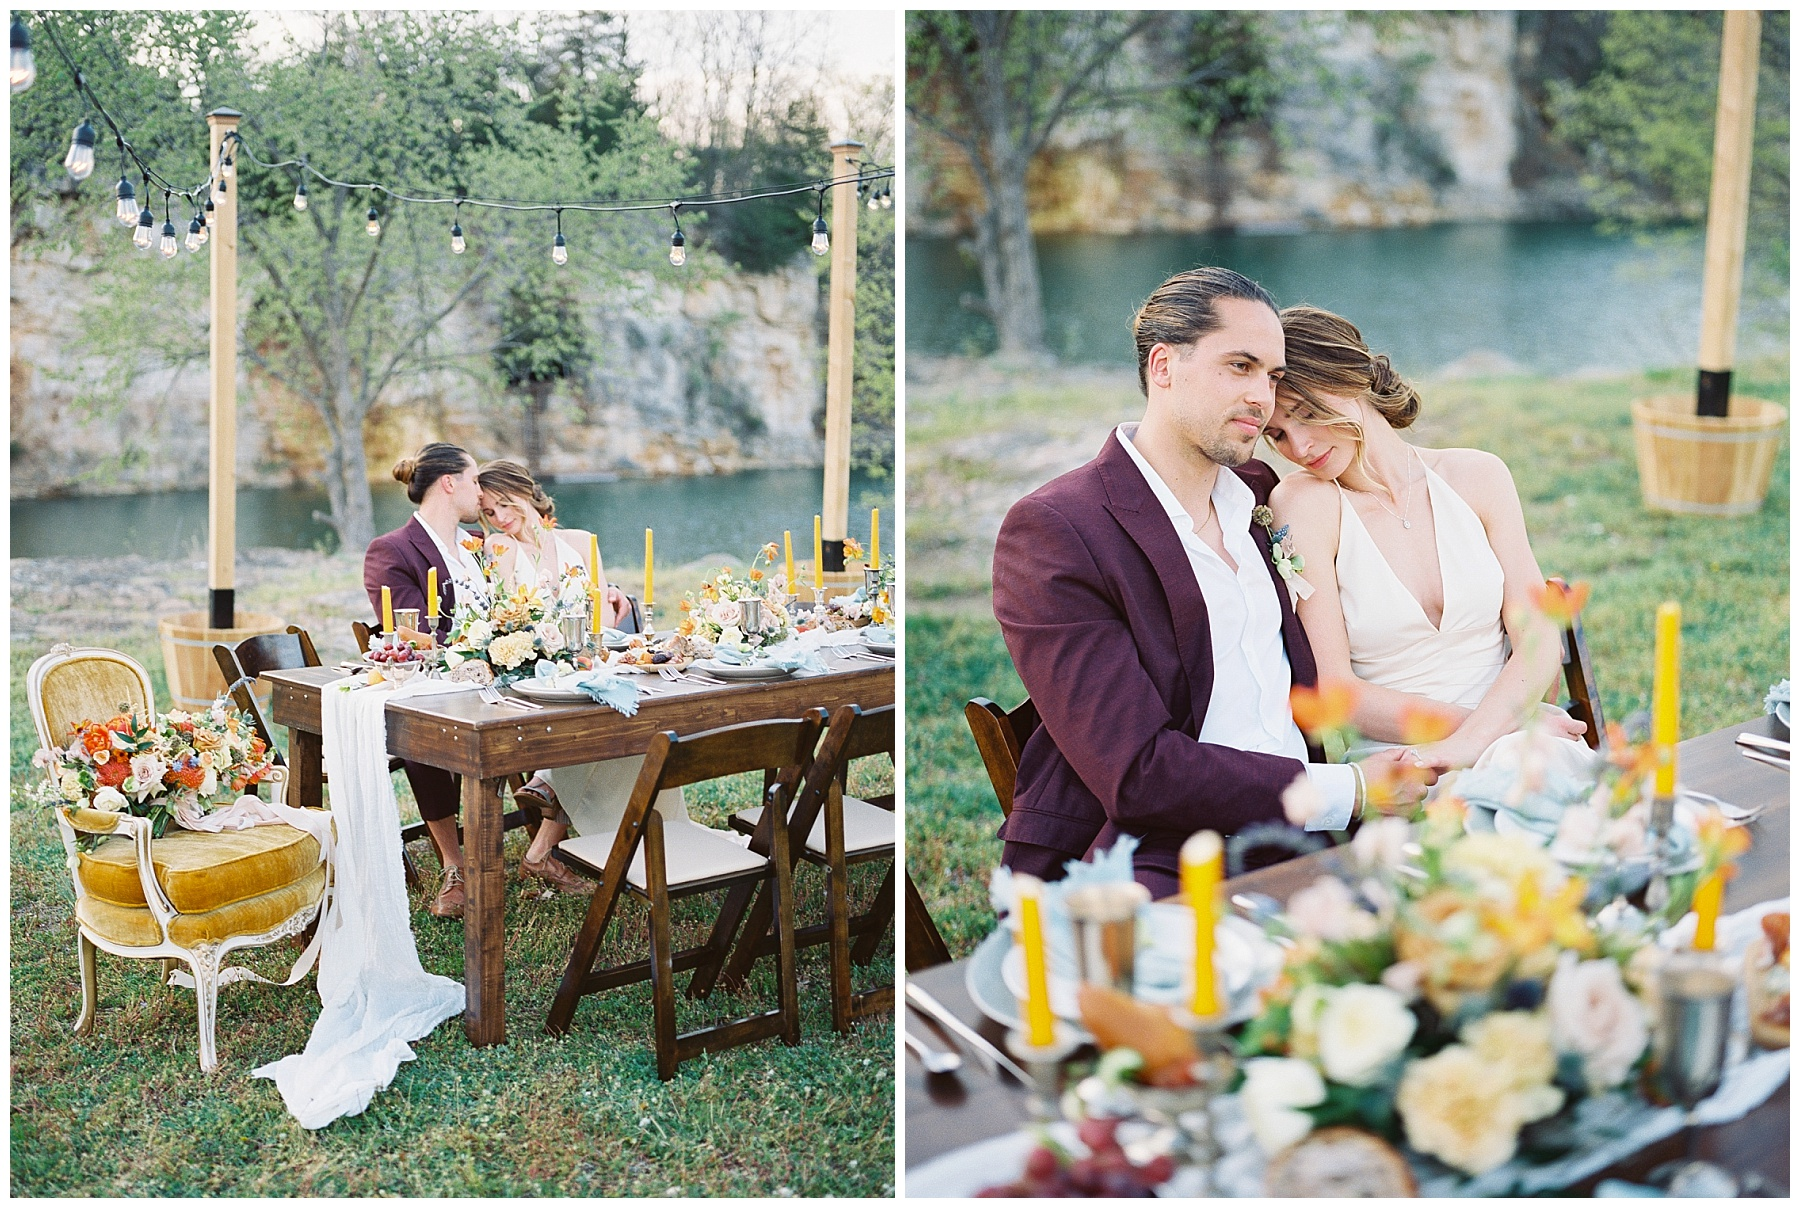 Intimate Spanish and French Inspired Destination Wedding with Lakeside Dinner Party at Dusk at Wildcliff by Kelsi Kliethermes Photography Best Missouri and Maui Wedding Photographer_0041.jpg